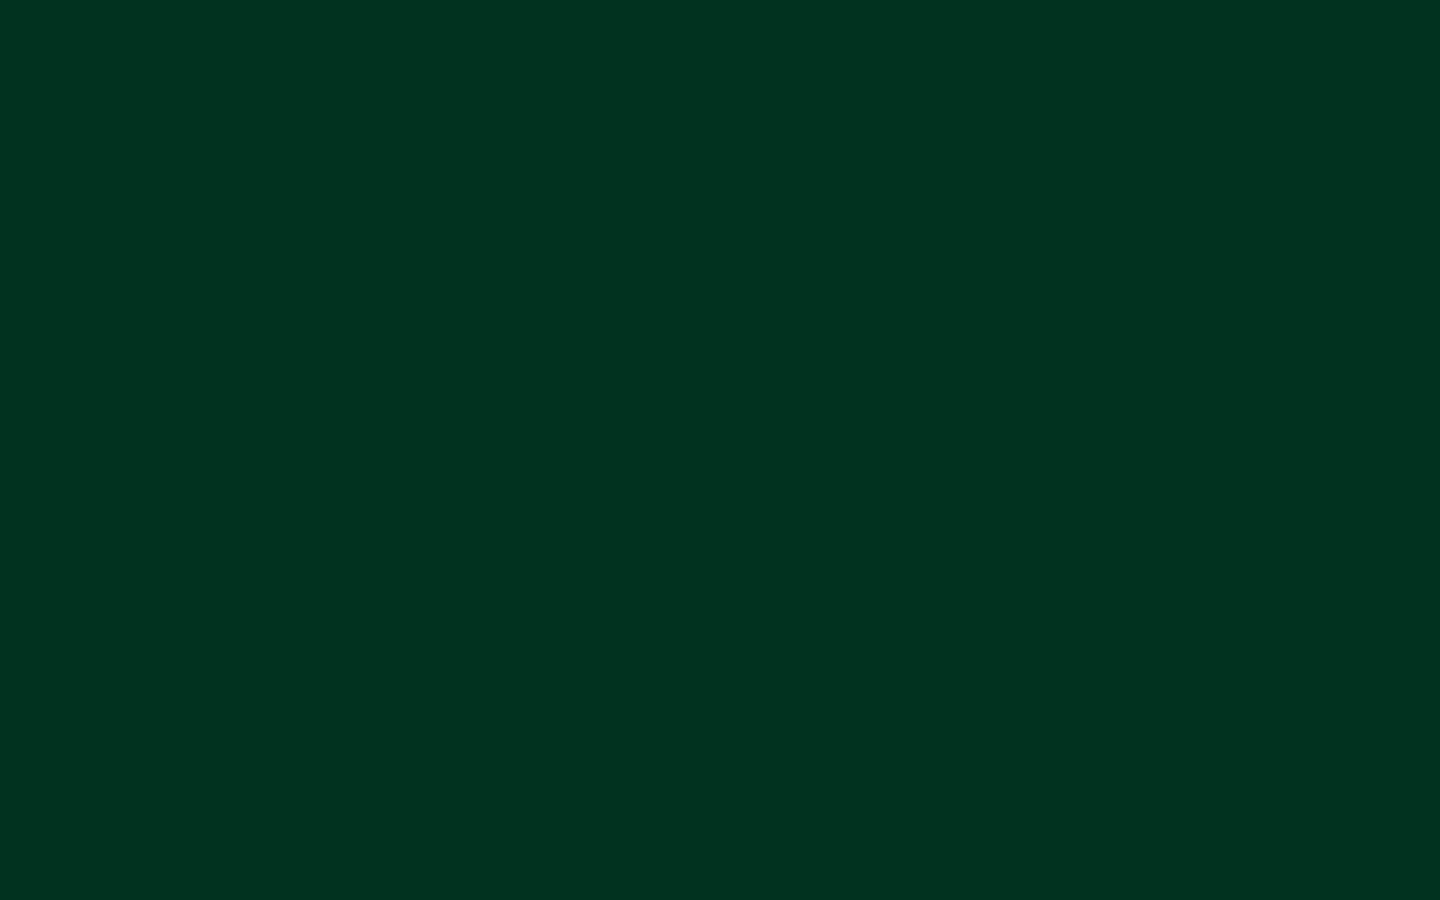 1440x900 Dark Green Solid Color Background